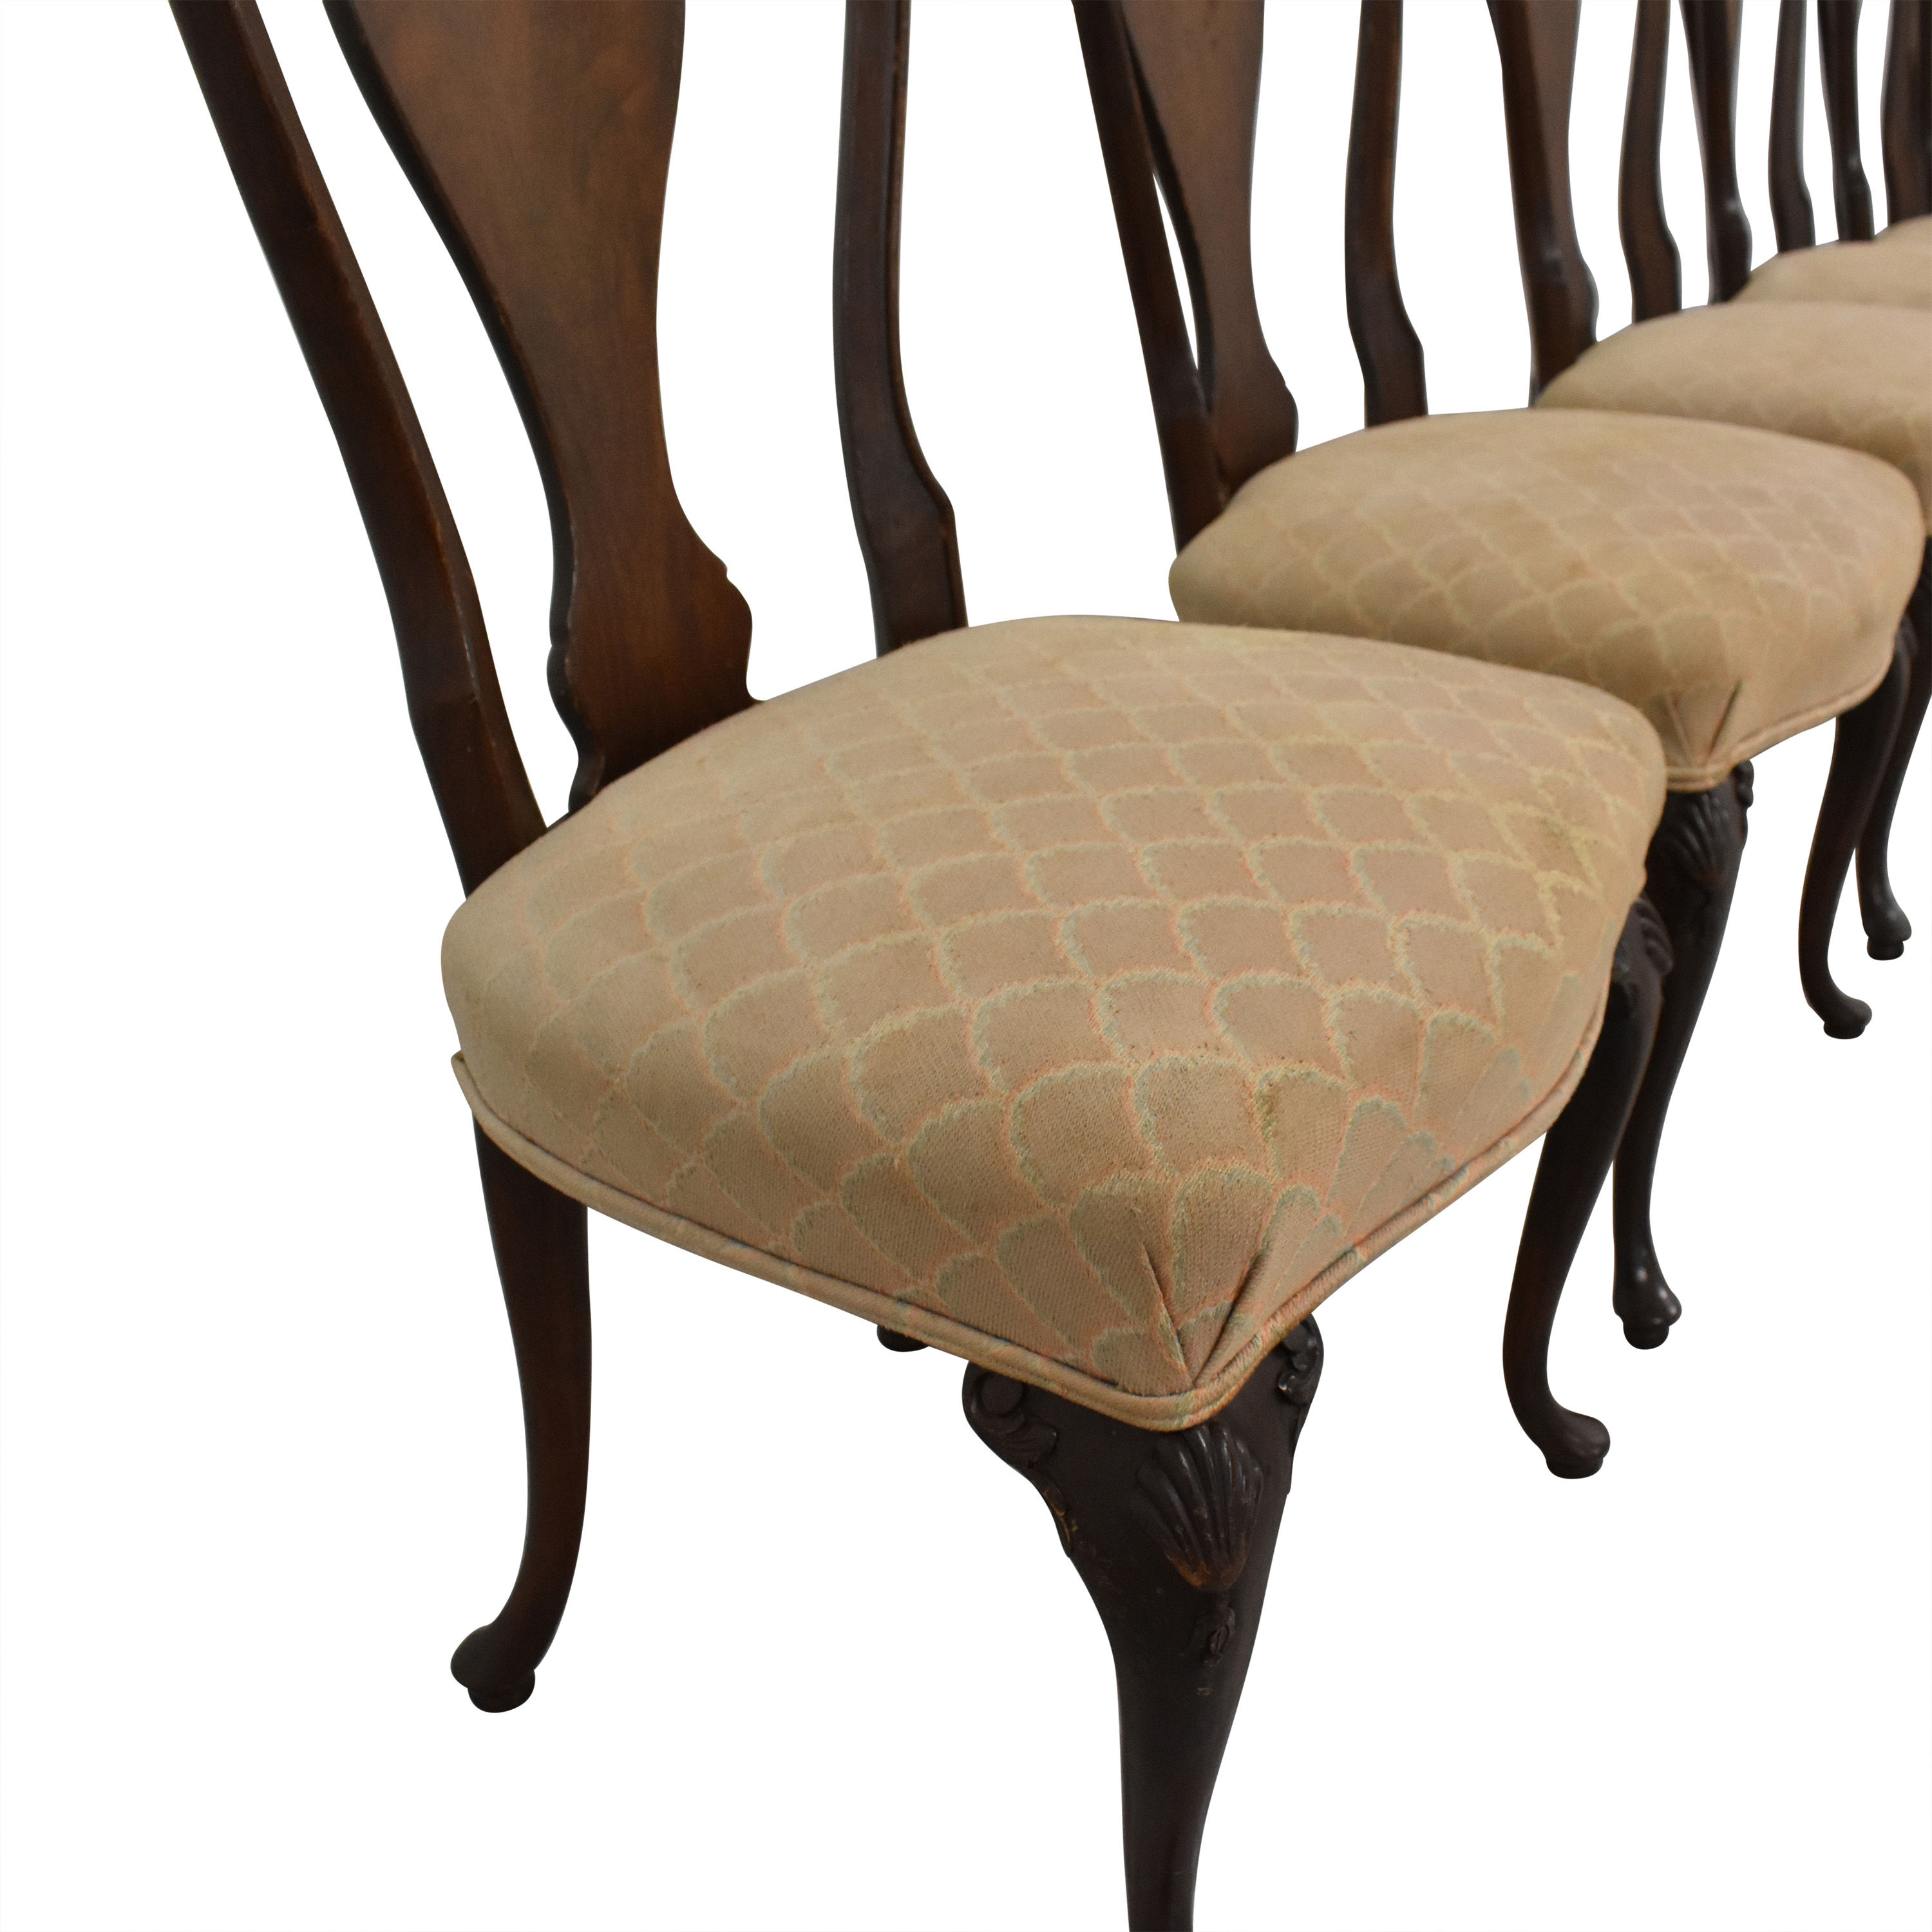 Drexel Upholstered Dining Chairs / Dining Chairs